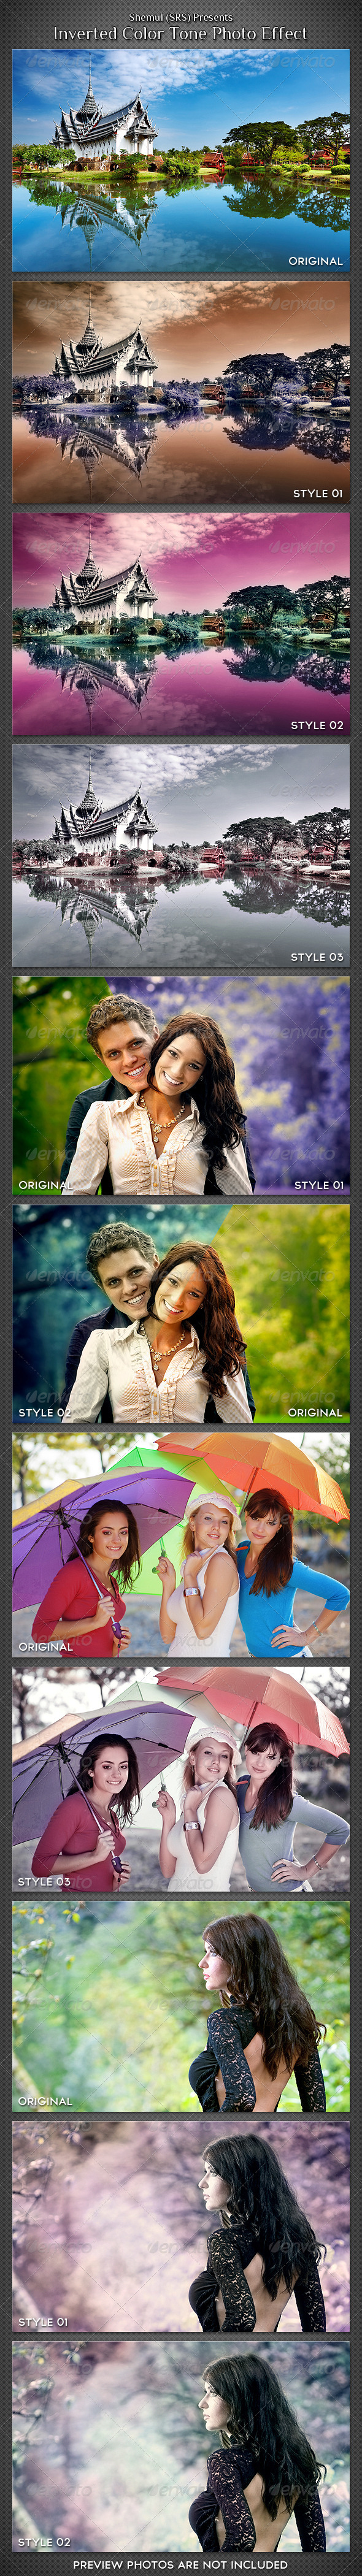 Inverted Romantic Tone Photo Effect Action - Photo Effects Actions